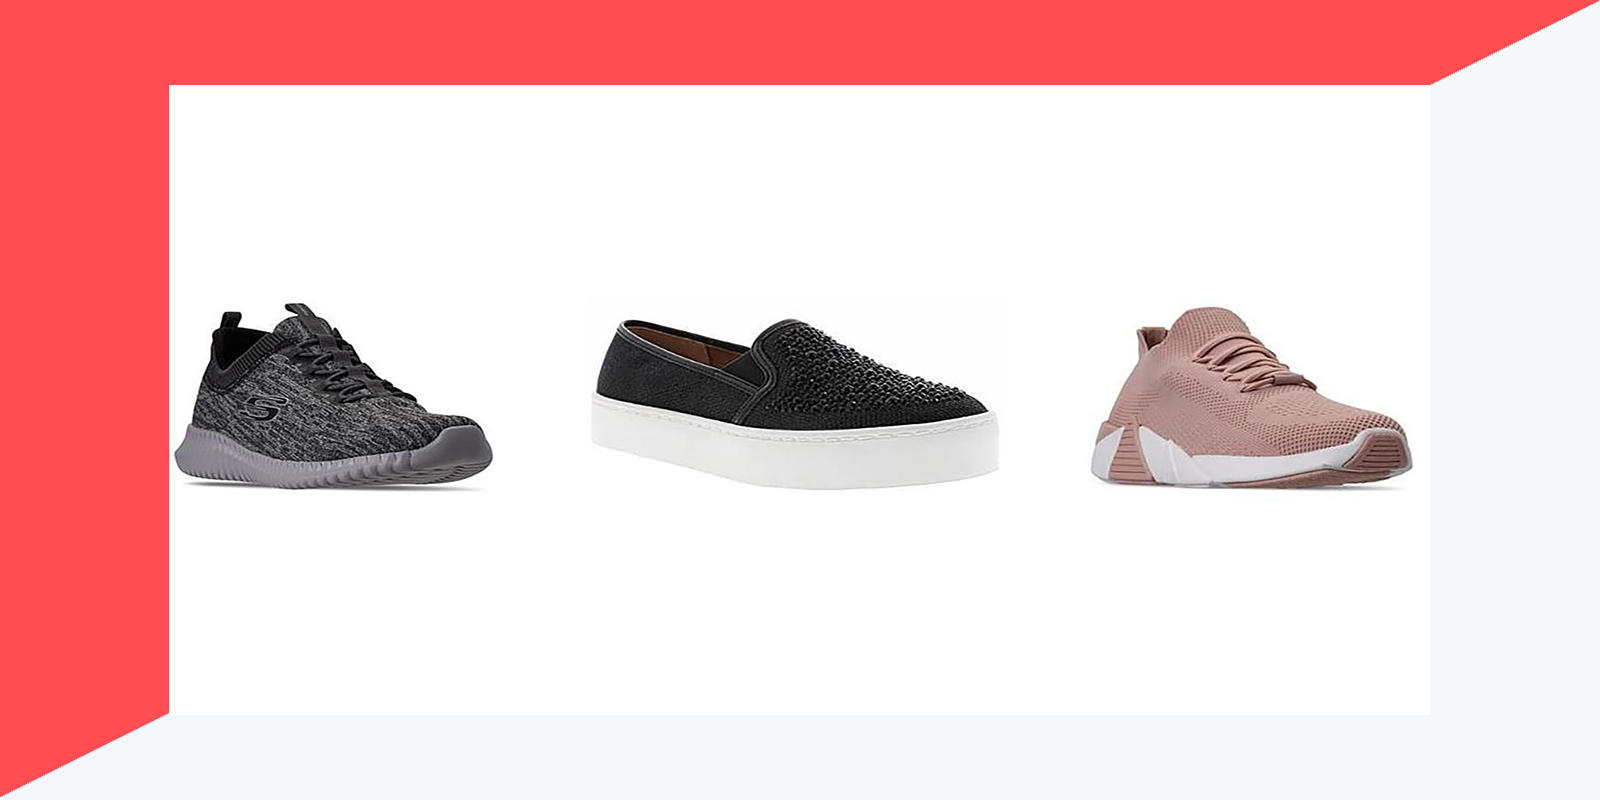 Shop our favorite sneaker styles